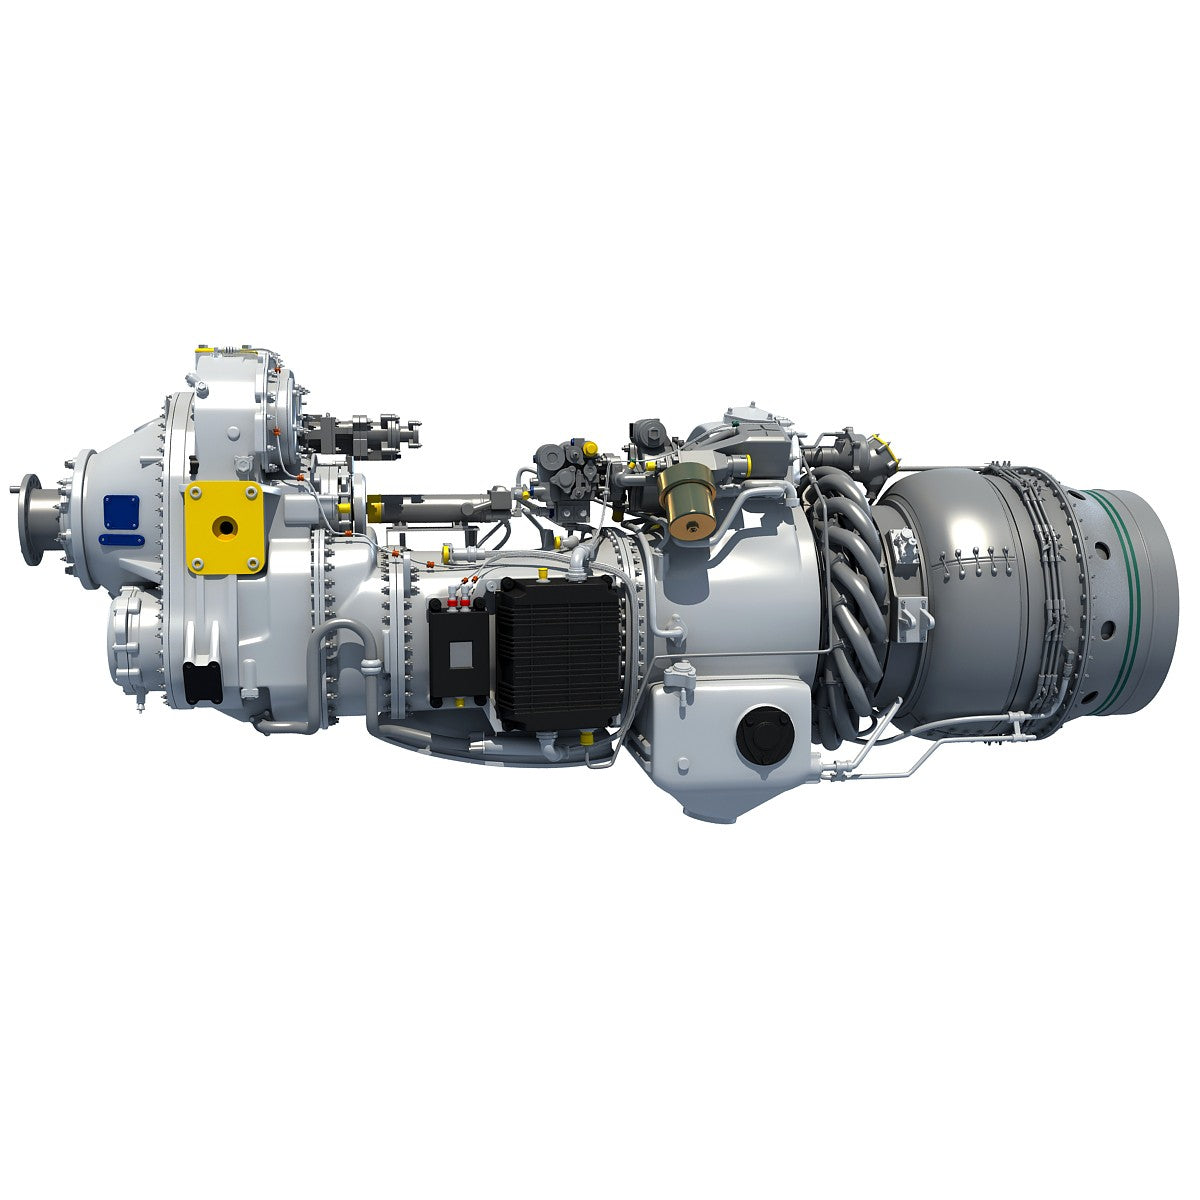 Pratt & Whitney PW100 Turboprop 3D Engine Model